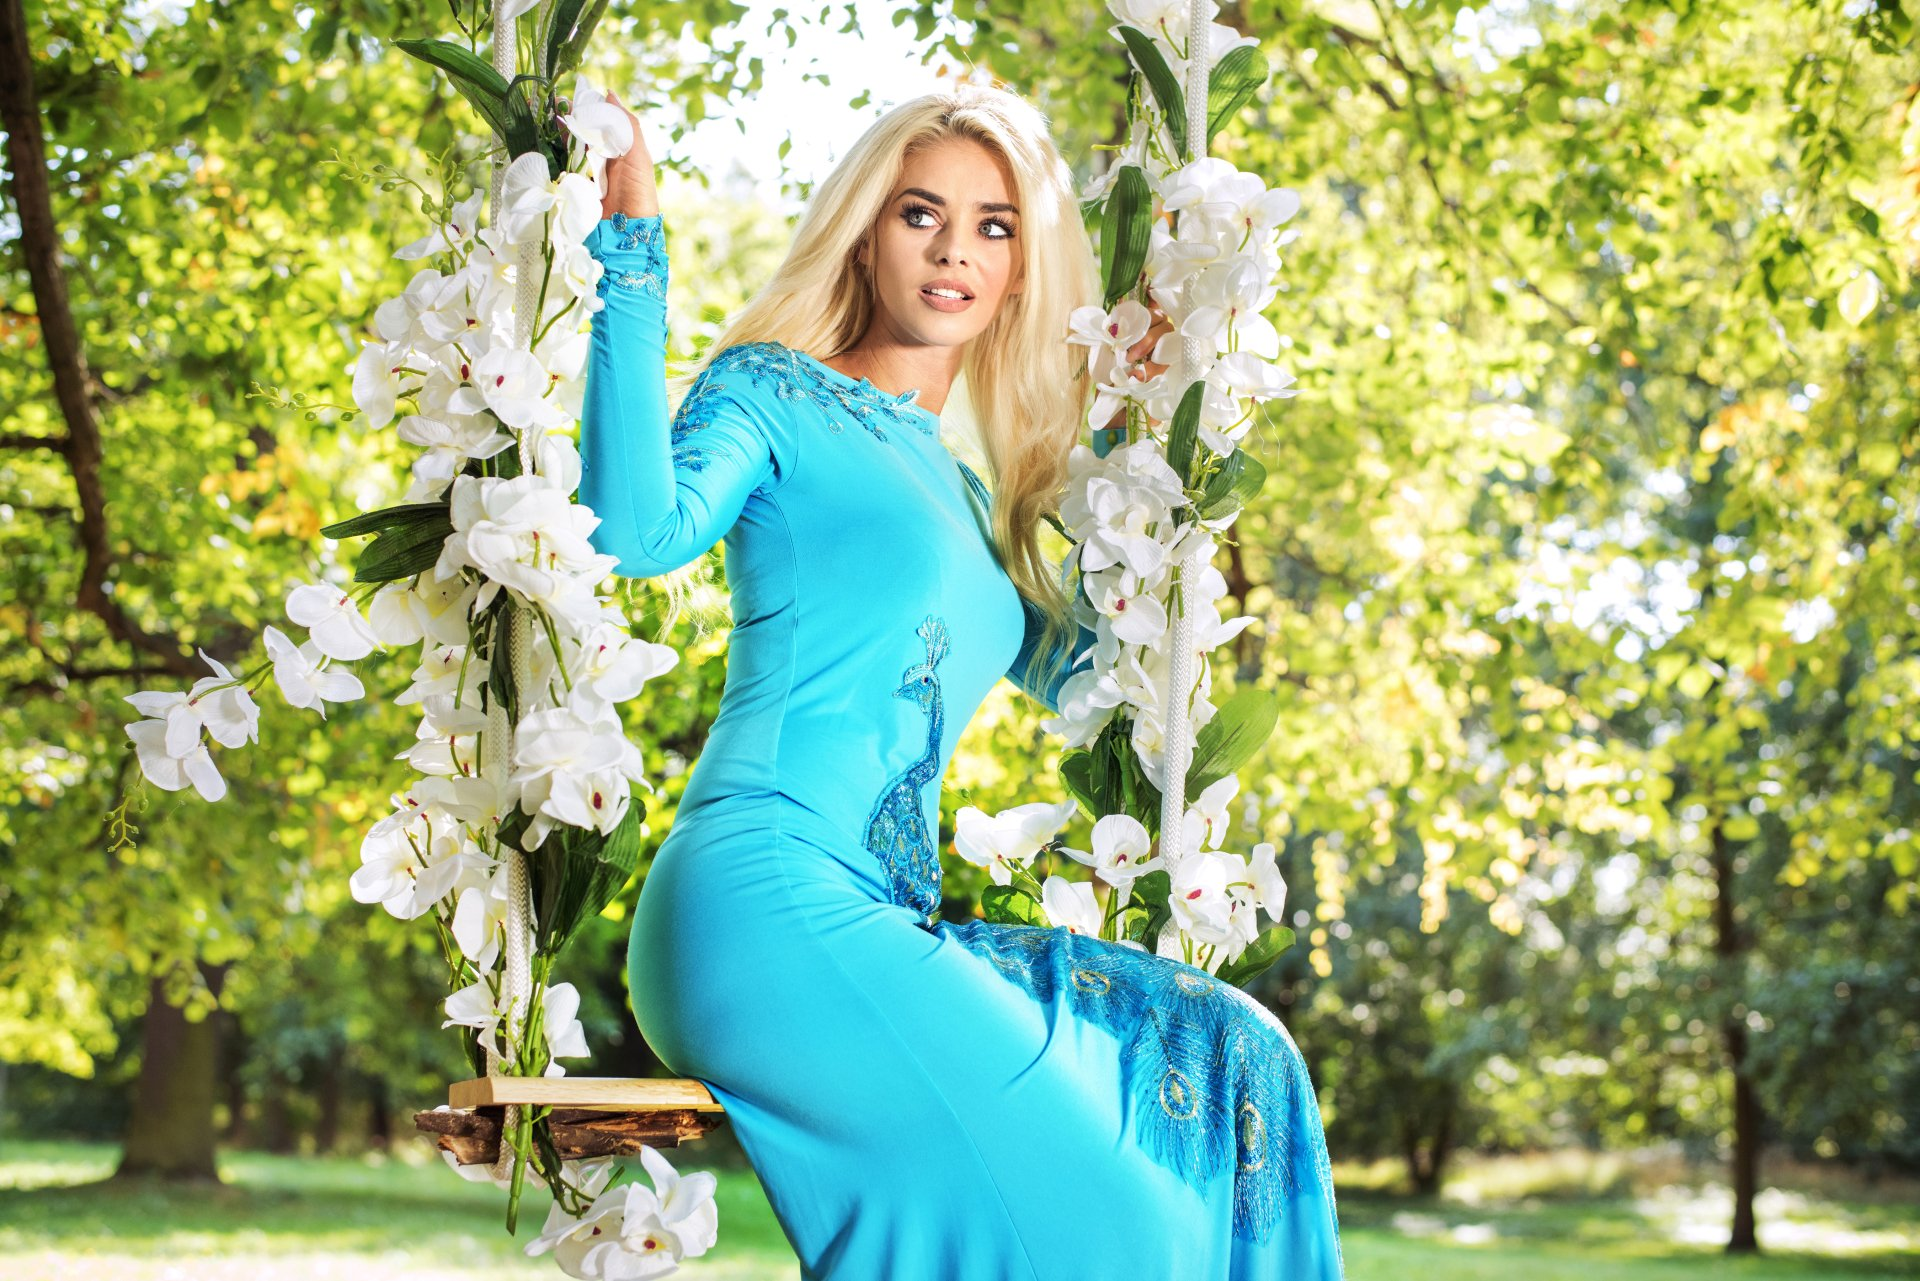 Women - Model  Woman Girl Blue Dress Depth Of Field Swing Blonde White Flower Wallpaper